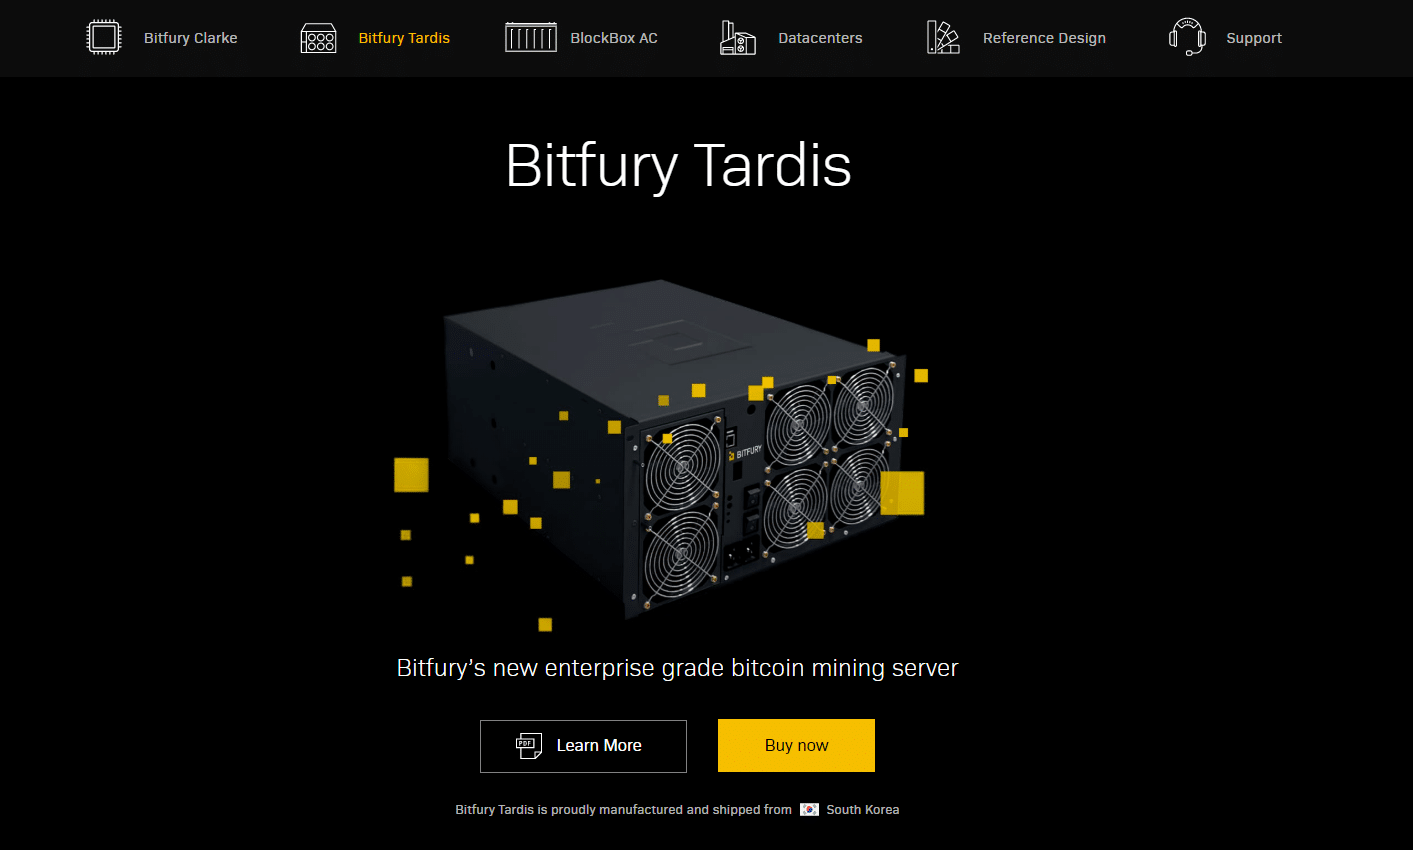 Bitfury Tardis: in vendita l'ASIC Bitcoin da 80 TH/s